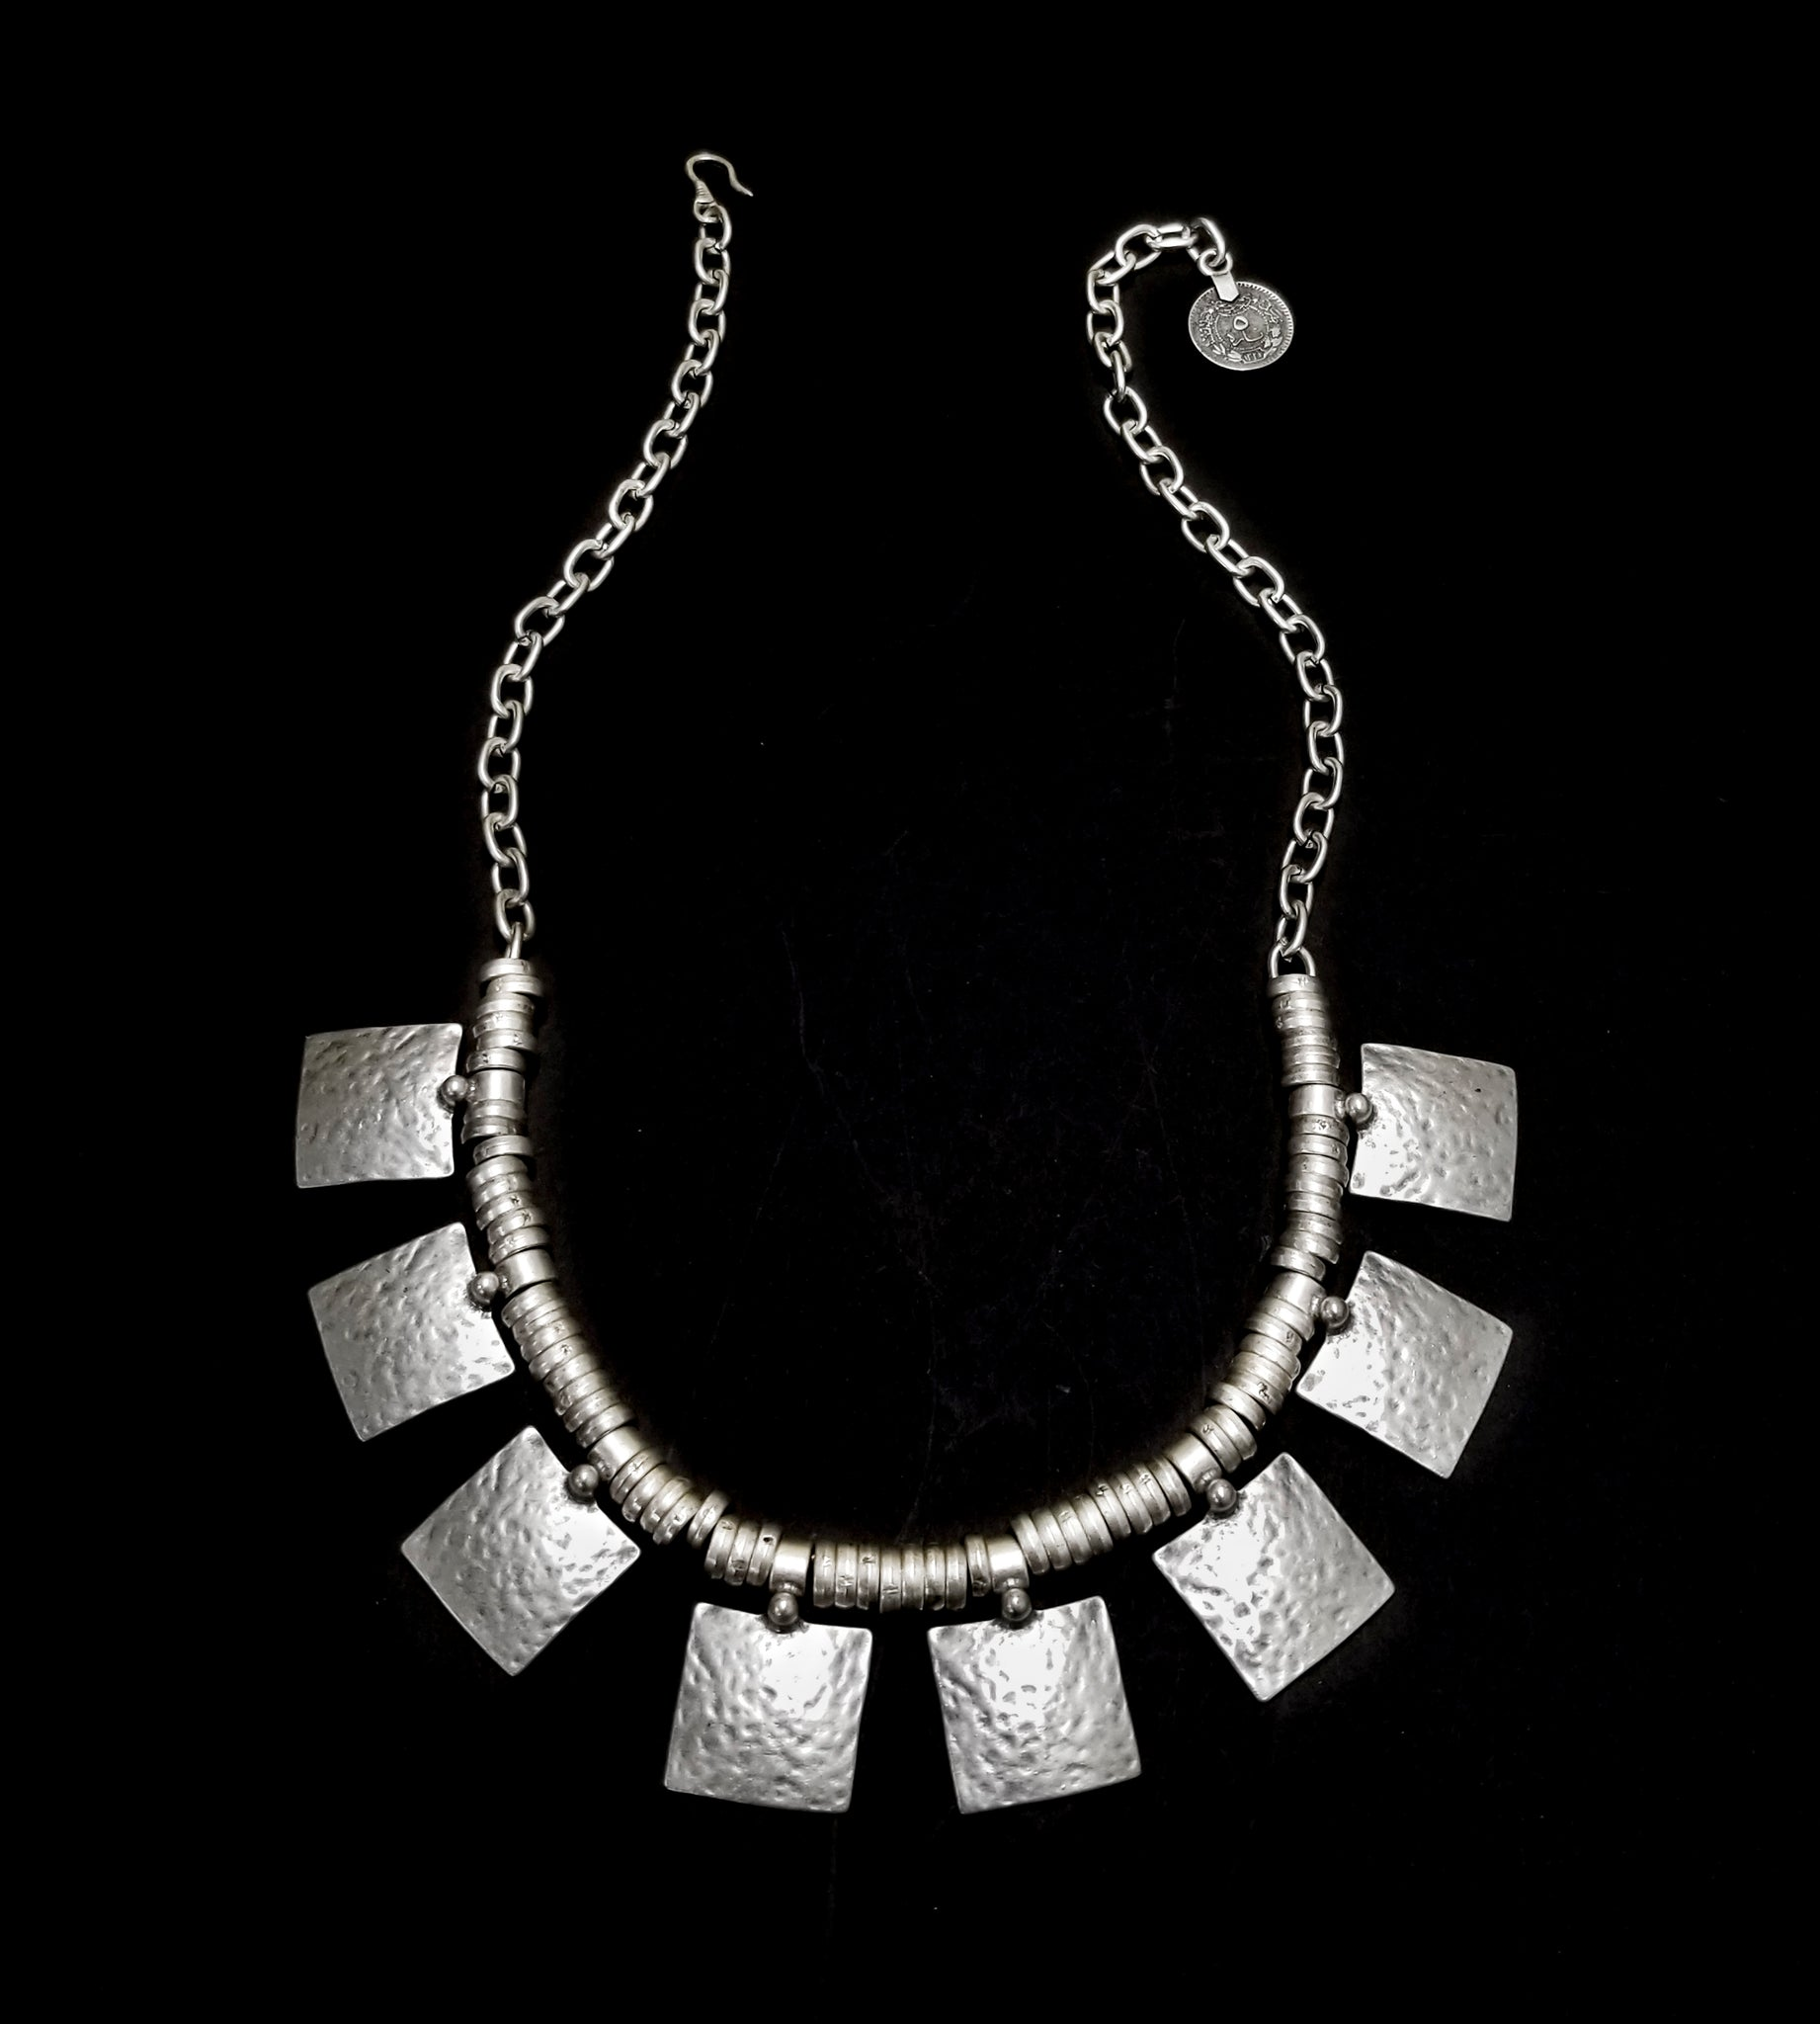 Pewter Necklace - SKU# 1662